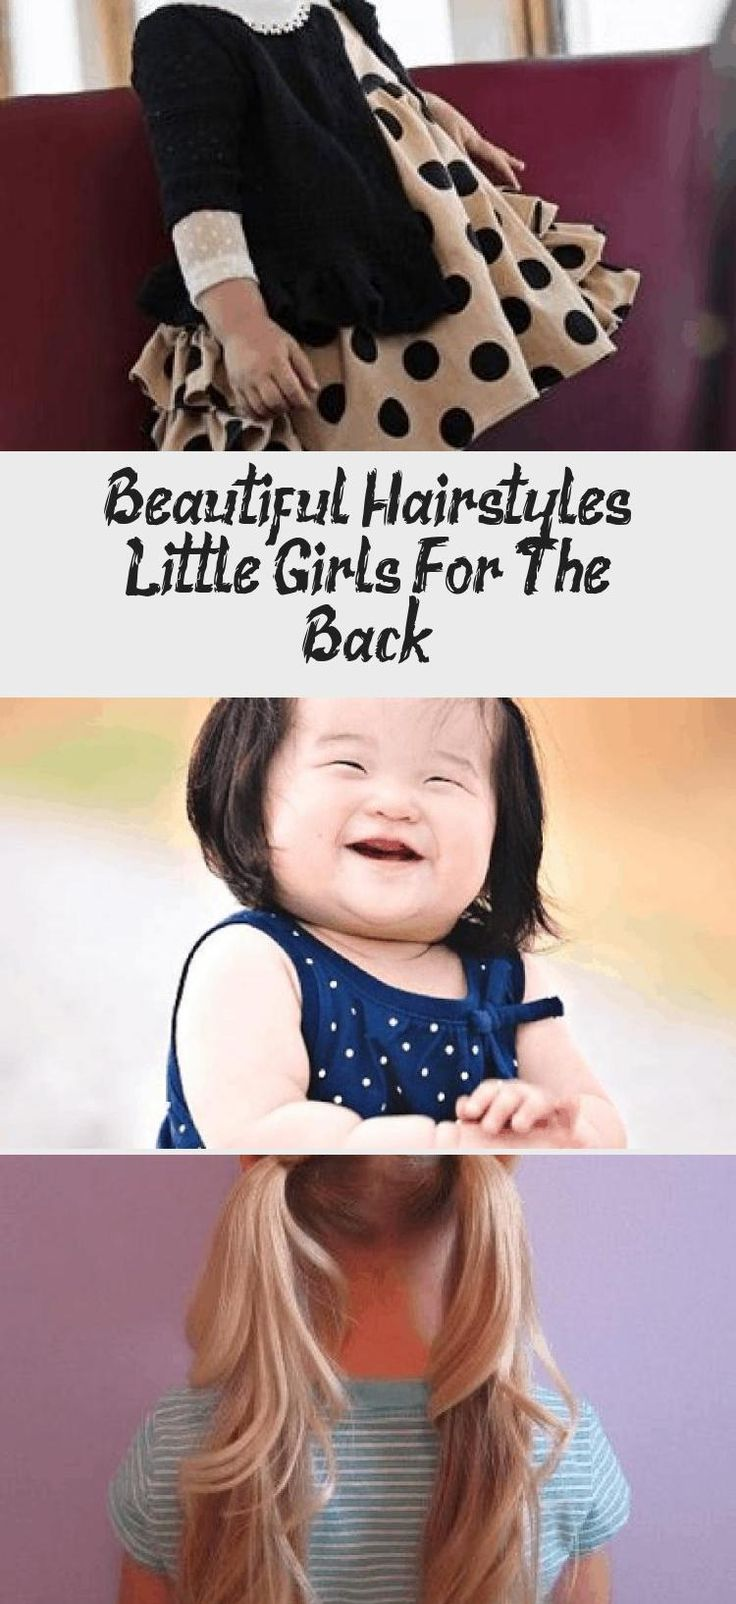 Beautiful Hairstyles Little Girls For The Back!  #beautiful #girls #hairstyles #little #babyhairstylesBoy #Longbabyhairstyles #babyhairstylesBaptism #Baldbabyhairstyles #babyhairstylesForParty